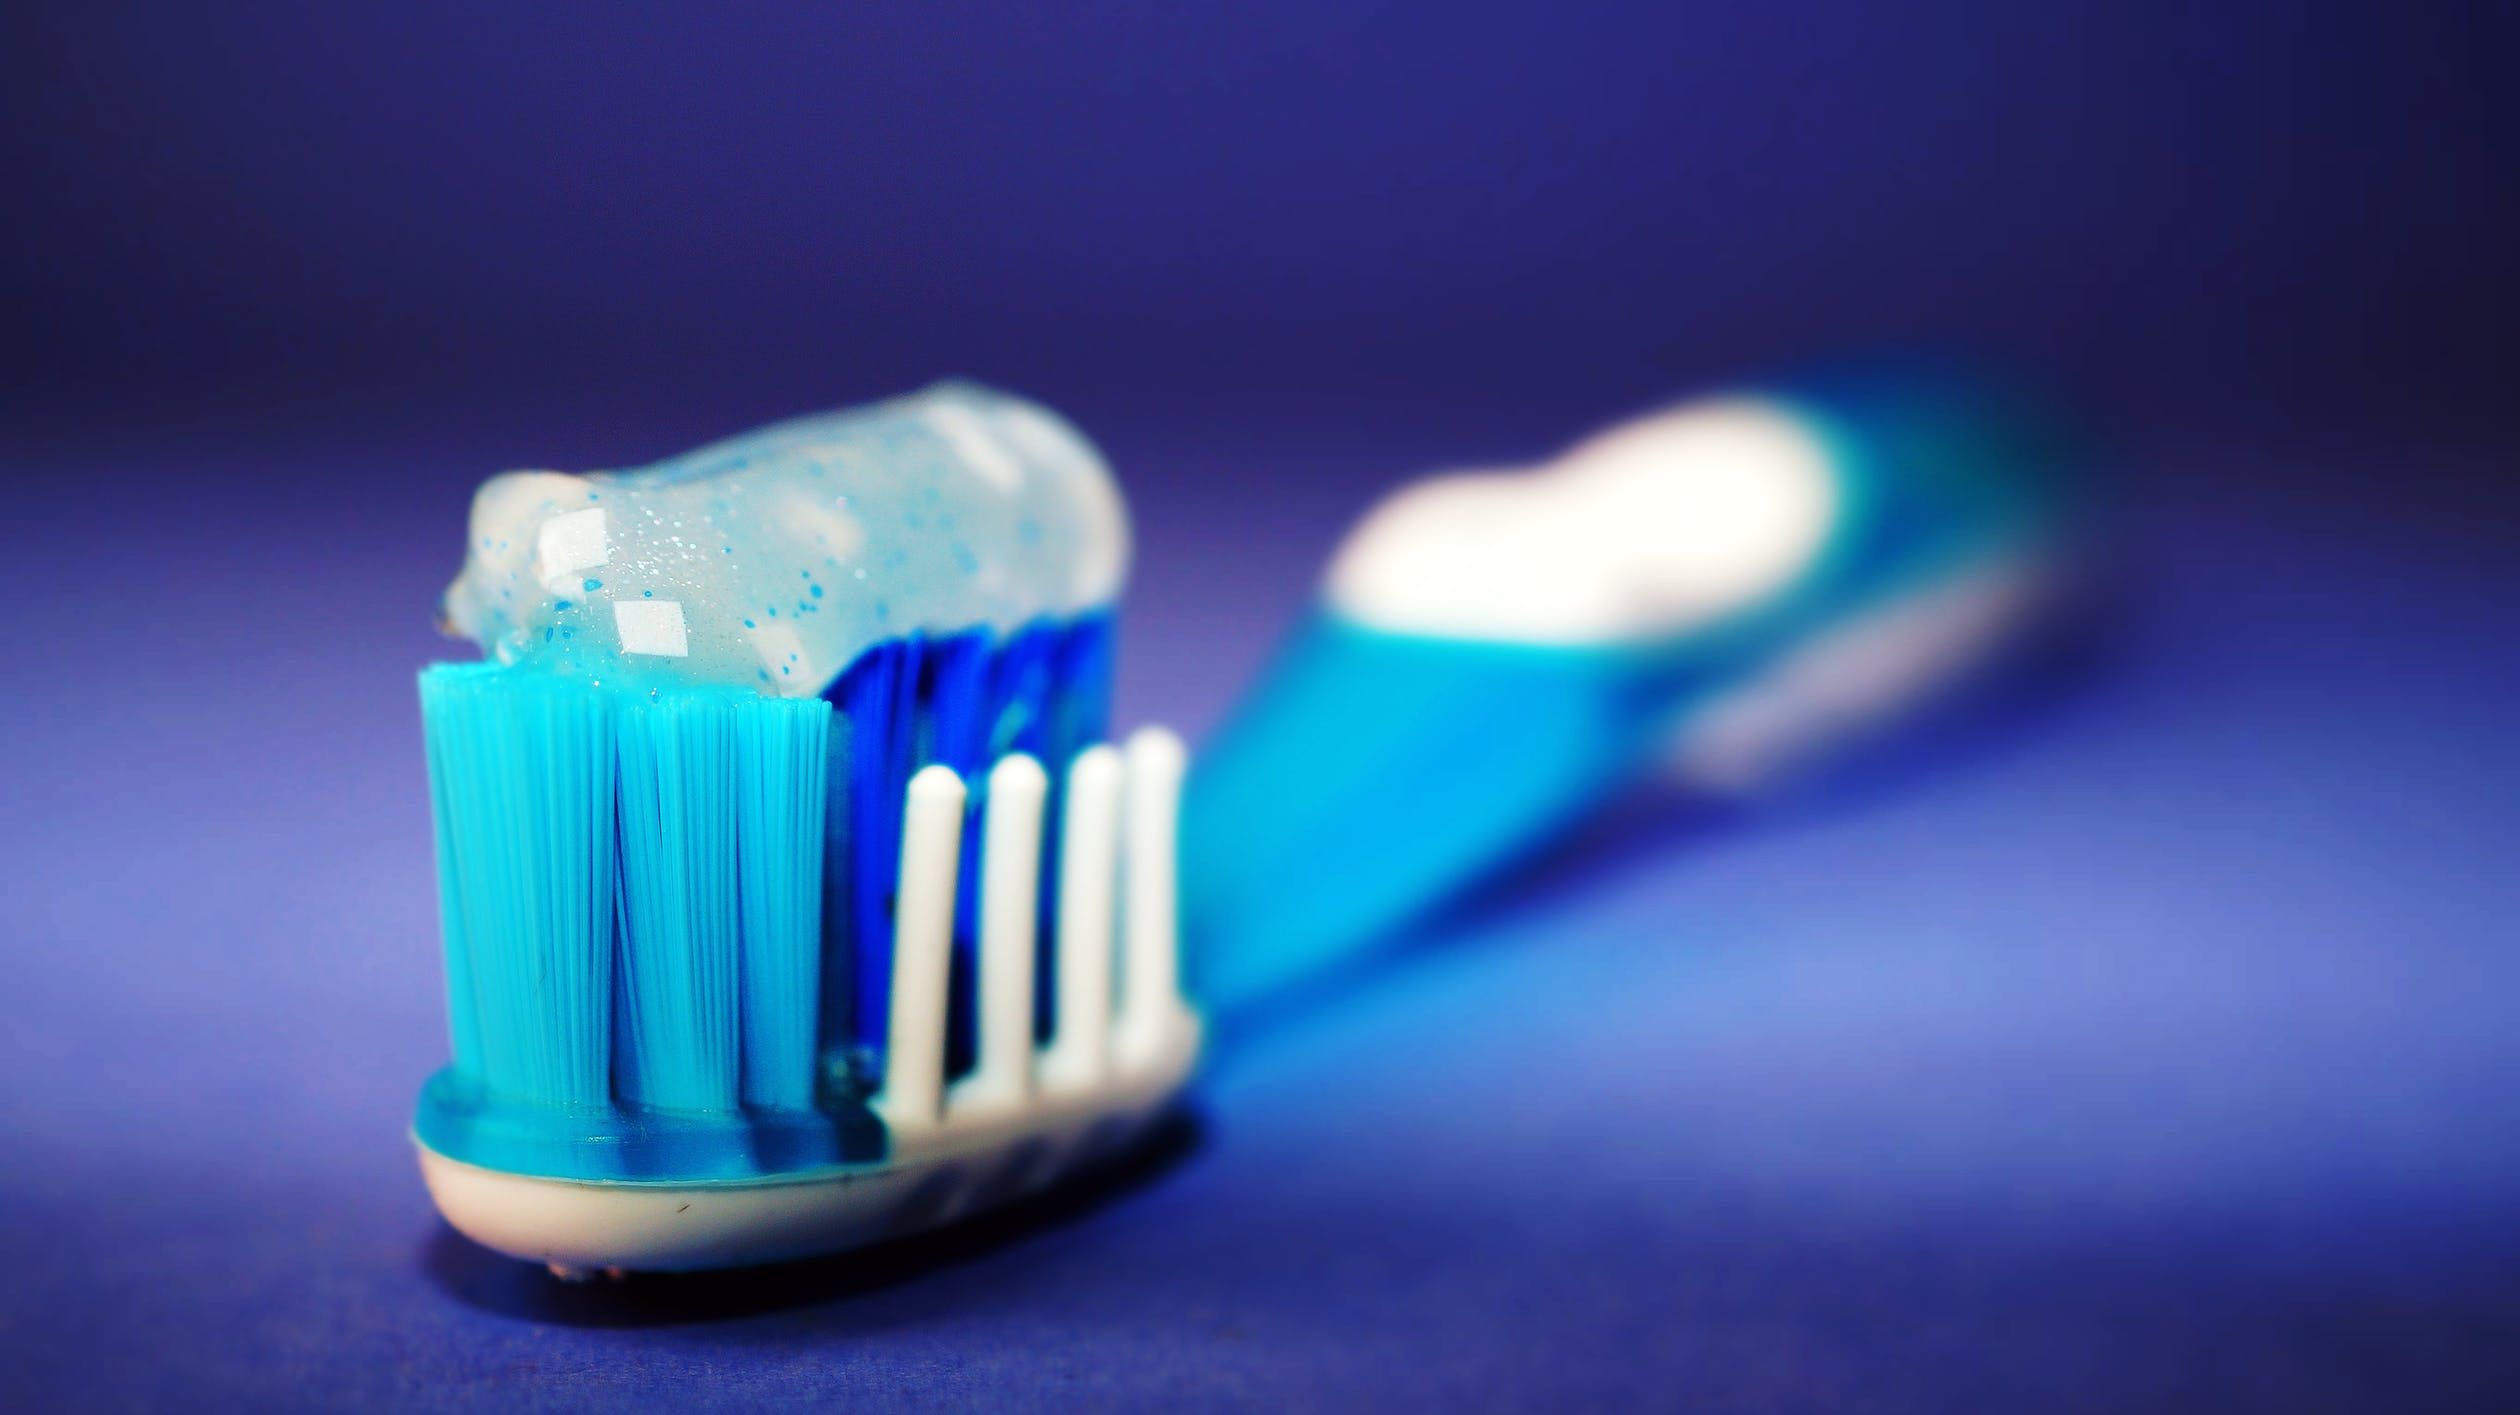 Toothbrush Brushing Tips Rancho Cucamonga Dentist Tips